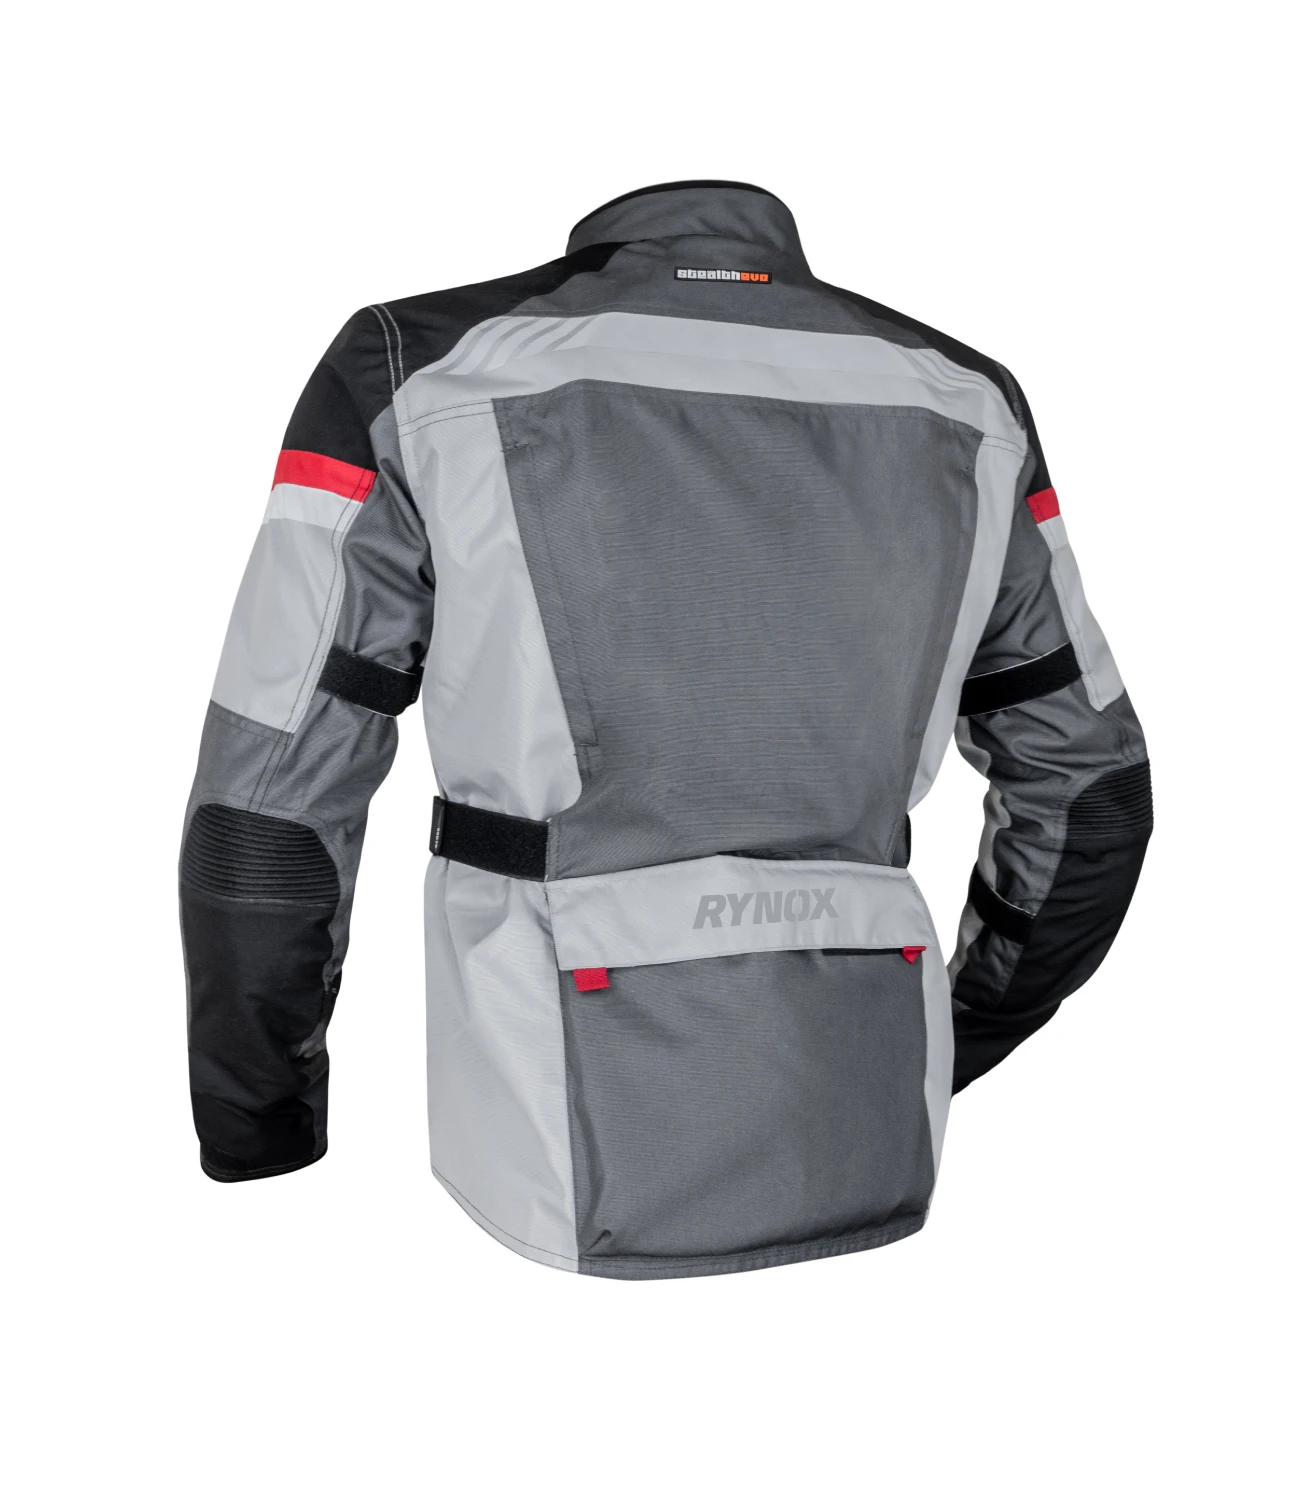 RYNOX STEALTH EVO 3 JACKET - GREY